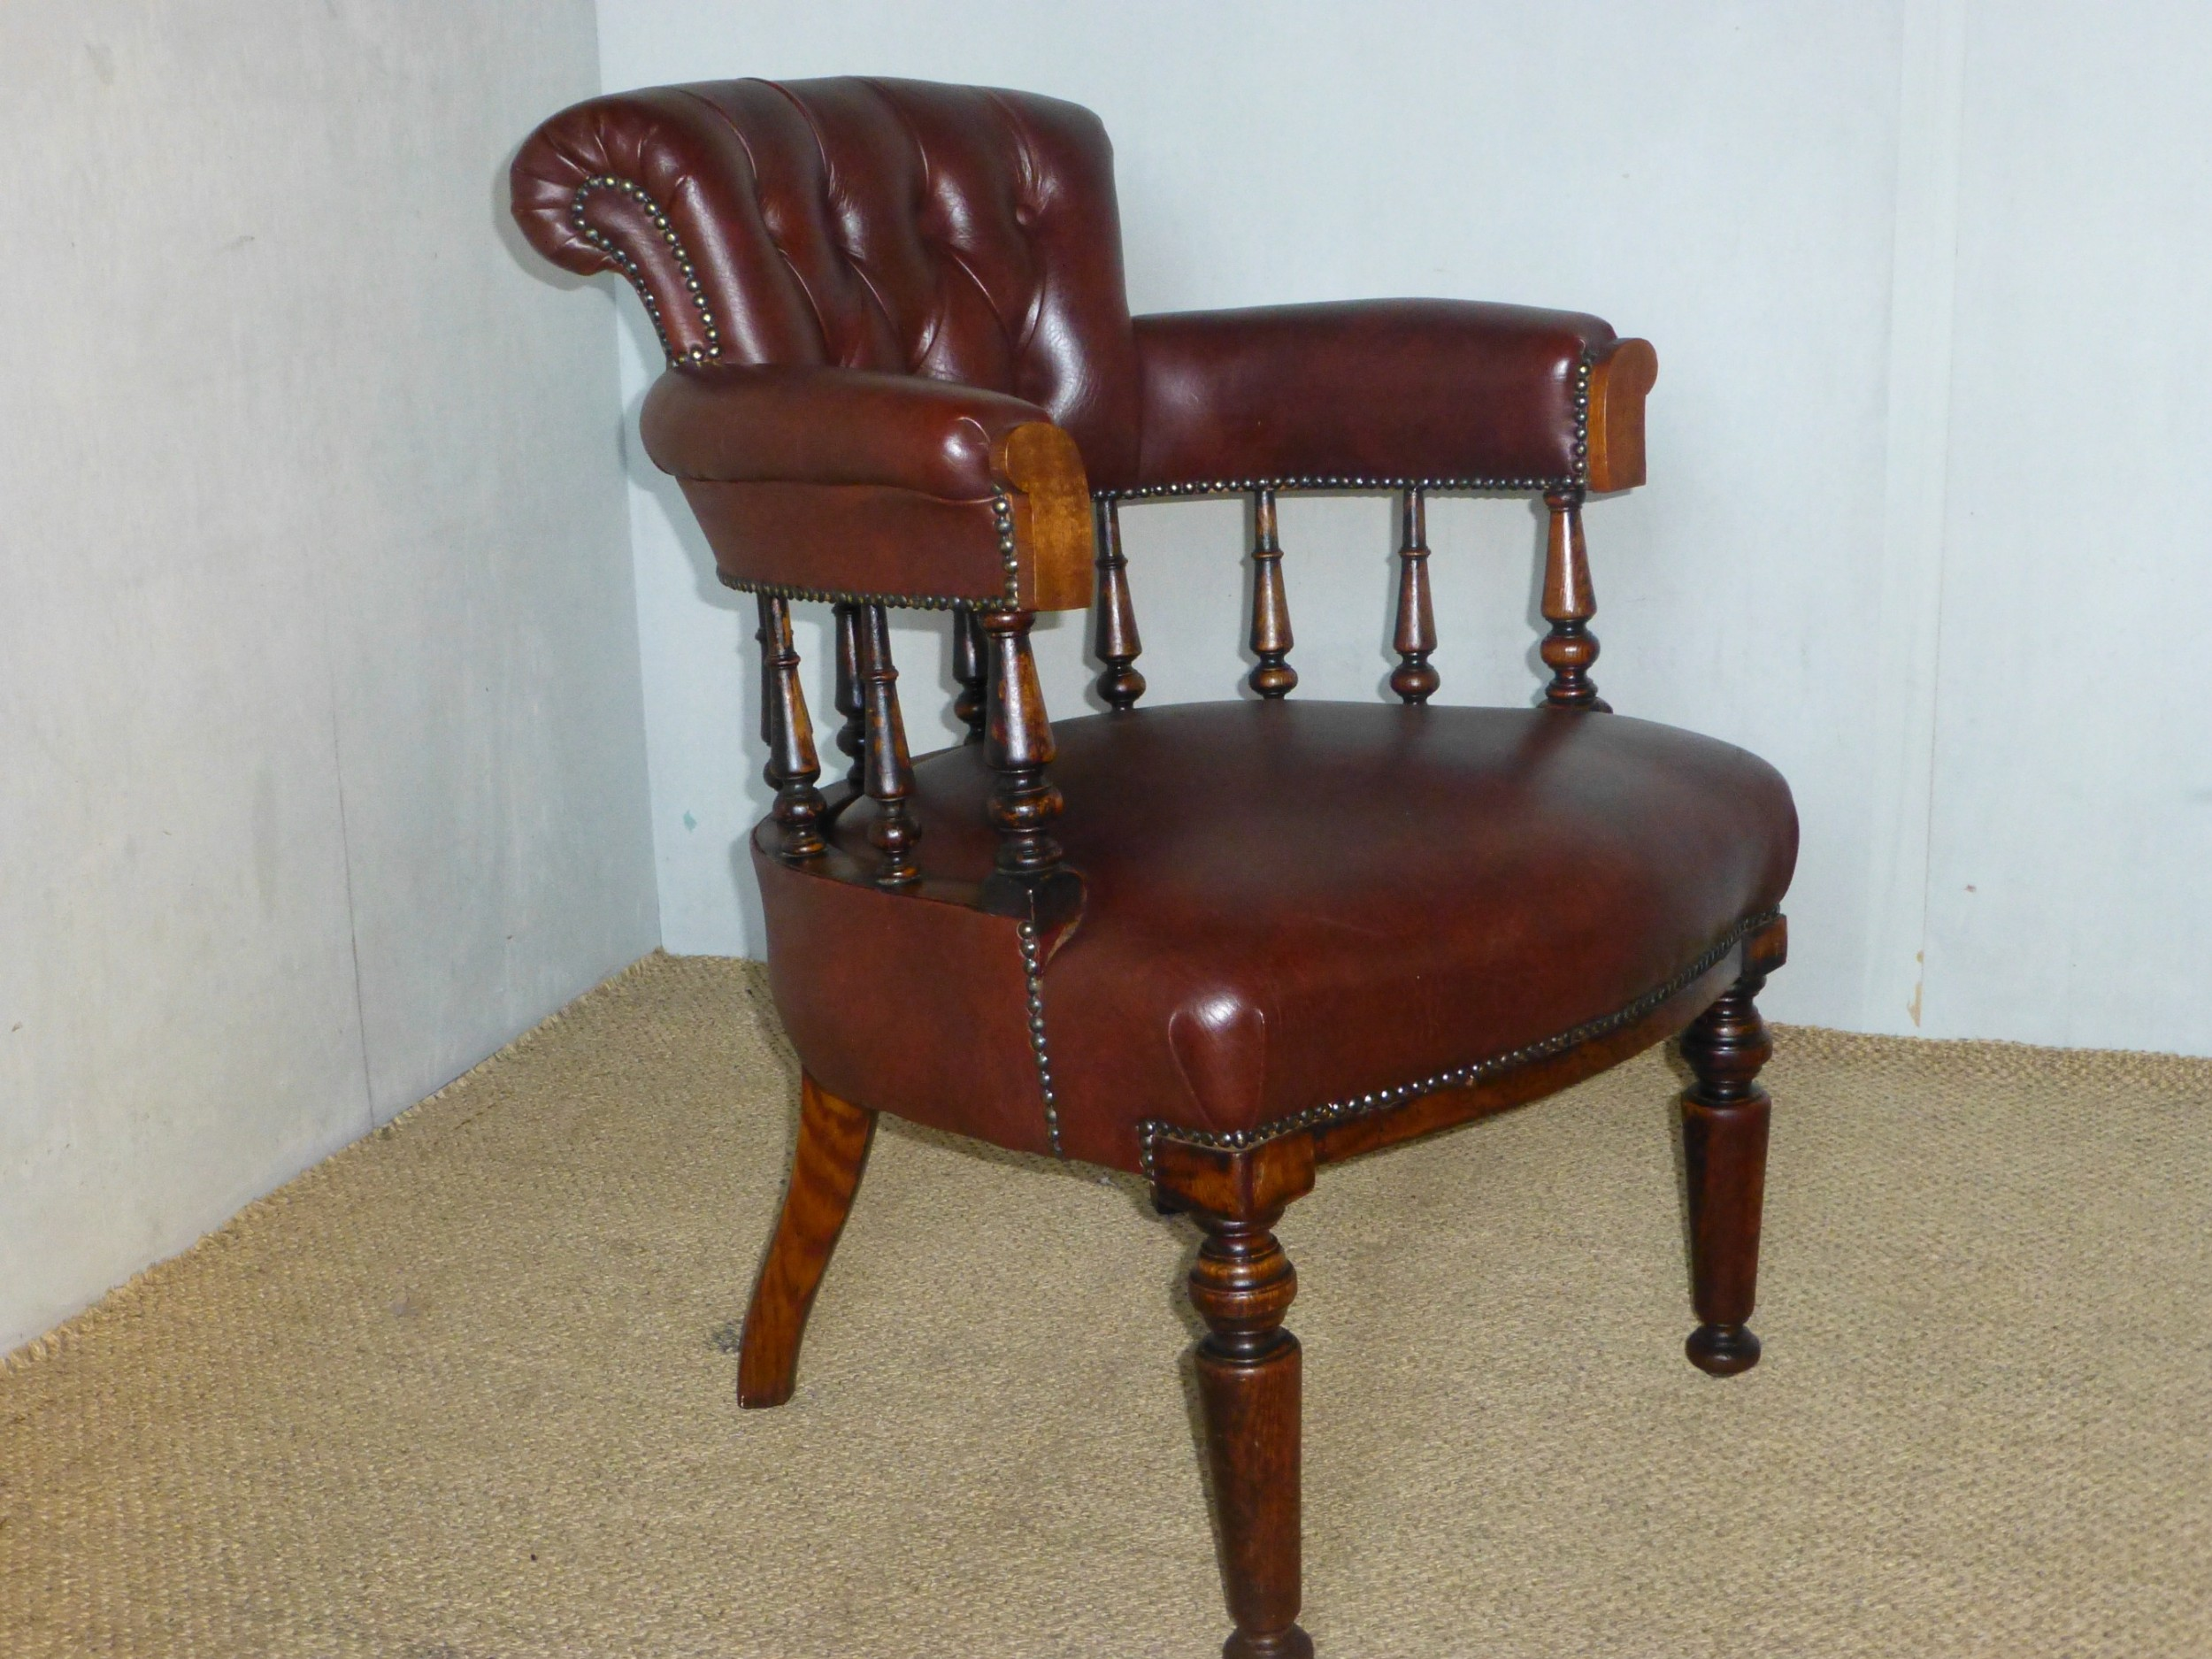 19th century victorian oak upholstered captains library desk chair c1870